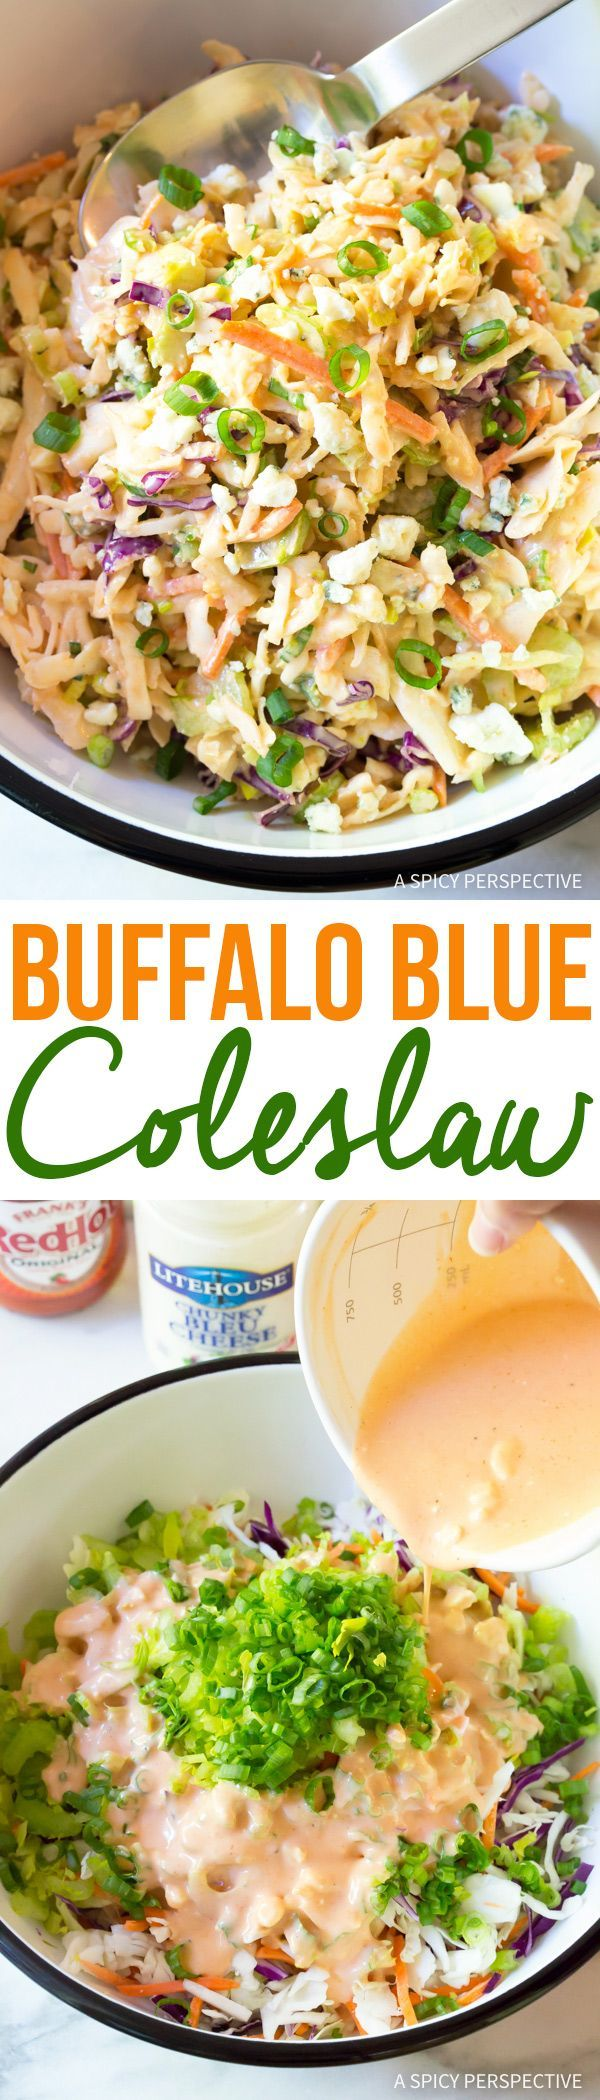 Bold and zesty Buffalo Blue Cheese Coleslaw. A great way to boost your classic coleslaw recipe this season!